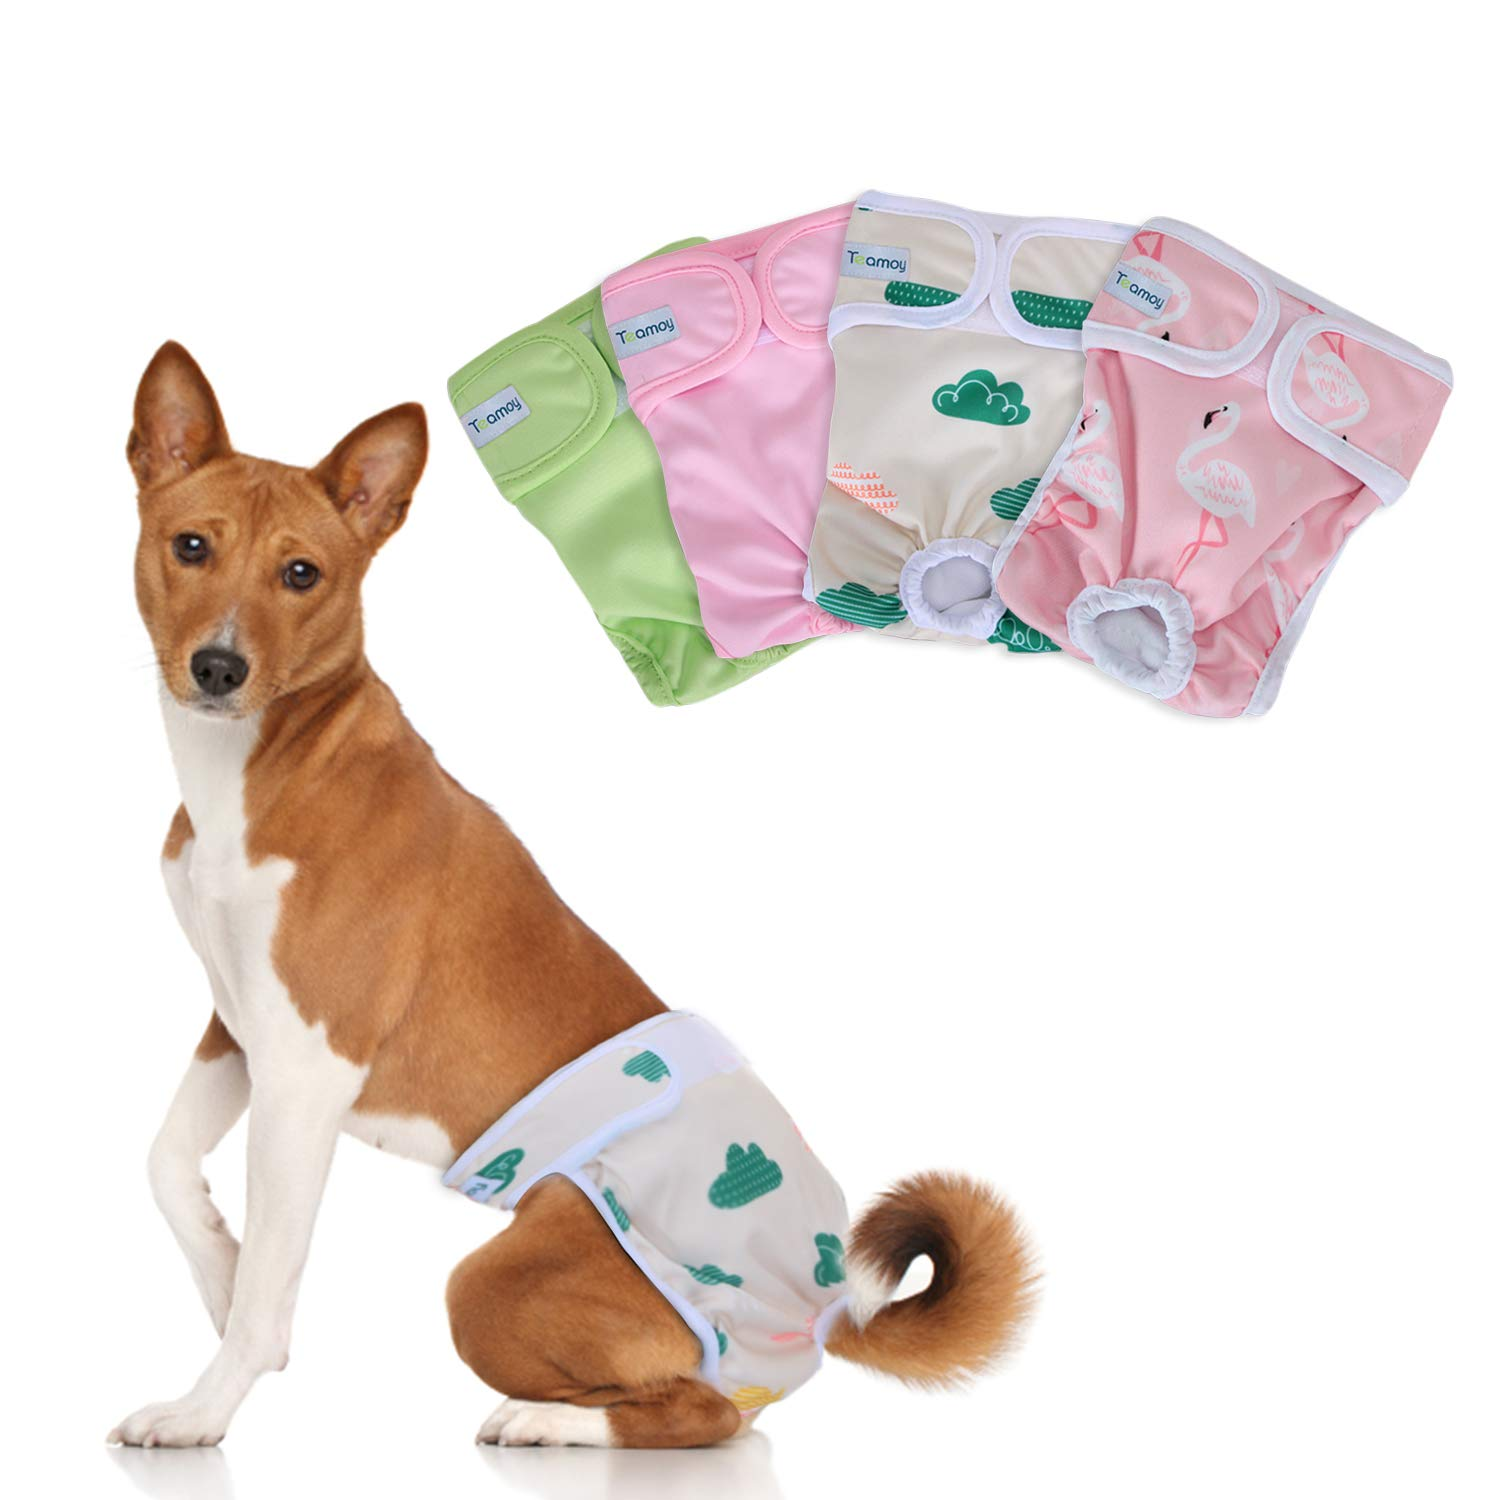 Reusable Washable Female Sanitary Physiological Pants for Dogs S Teamoy 4PCS Pack Dog Diapers Fit for 9-15 Super-Absorbent Comfortable and Stylish